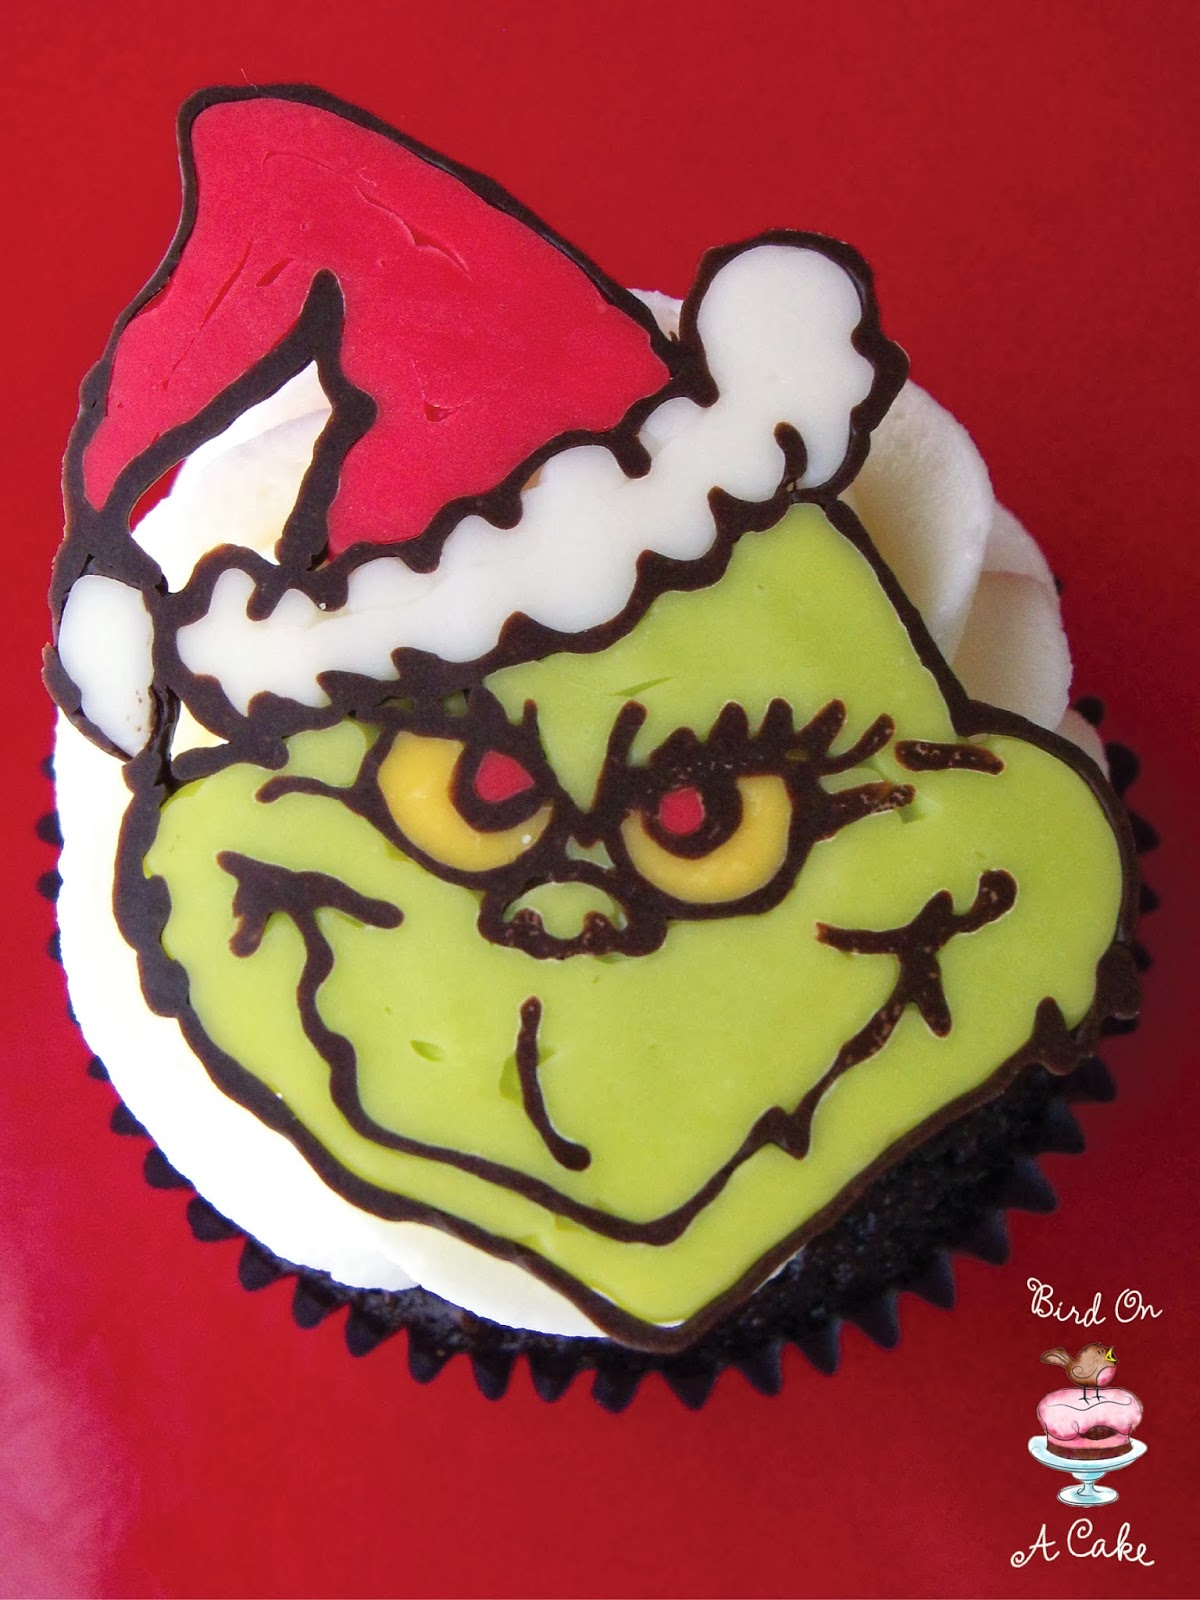 The Grinch Cake Toppers